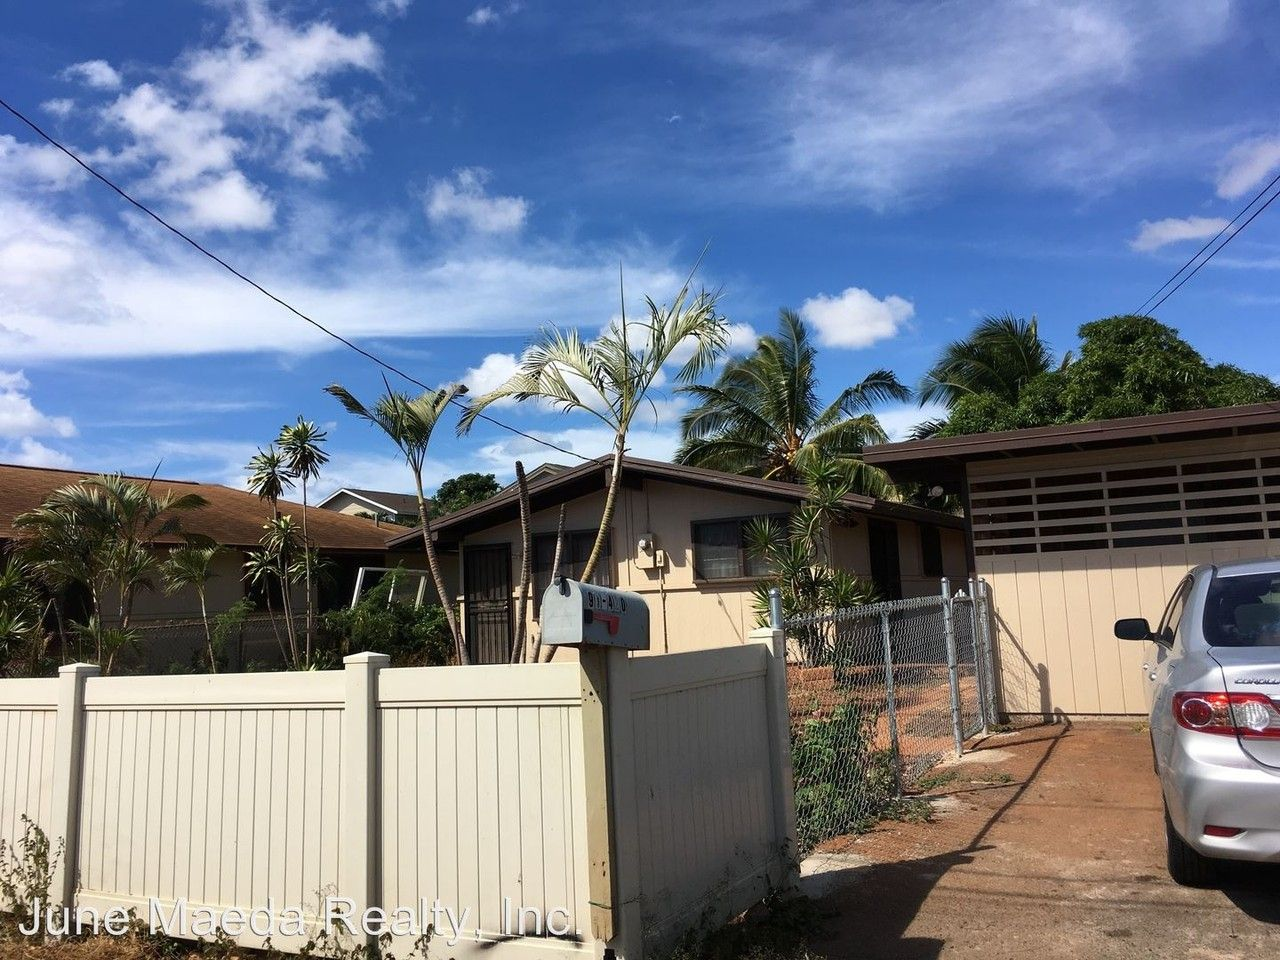 91 420 Papipi Dr Ewa Gentry Hi 96706 3 Bedroom House For